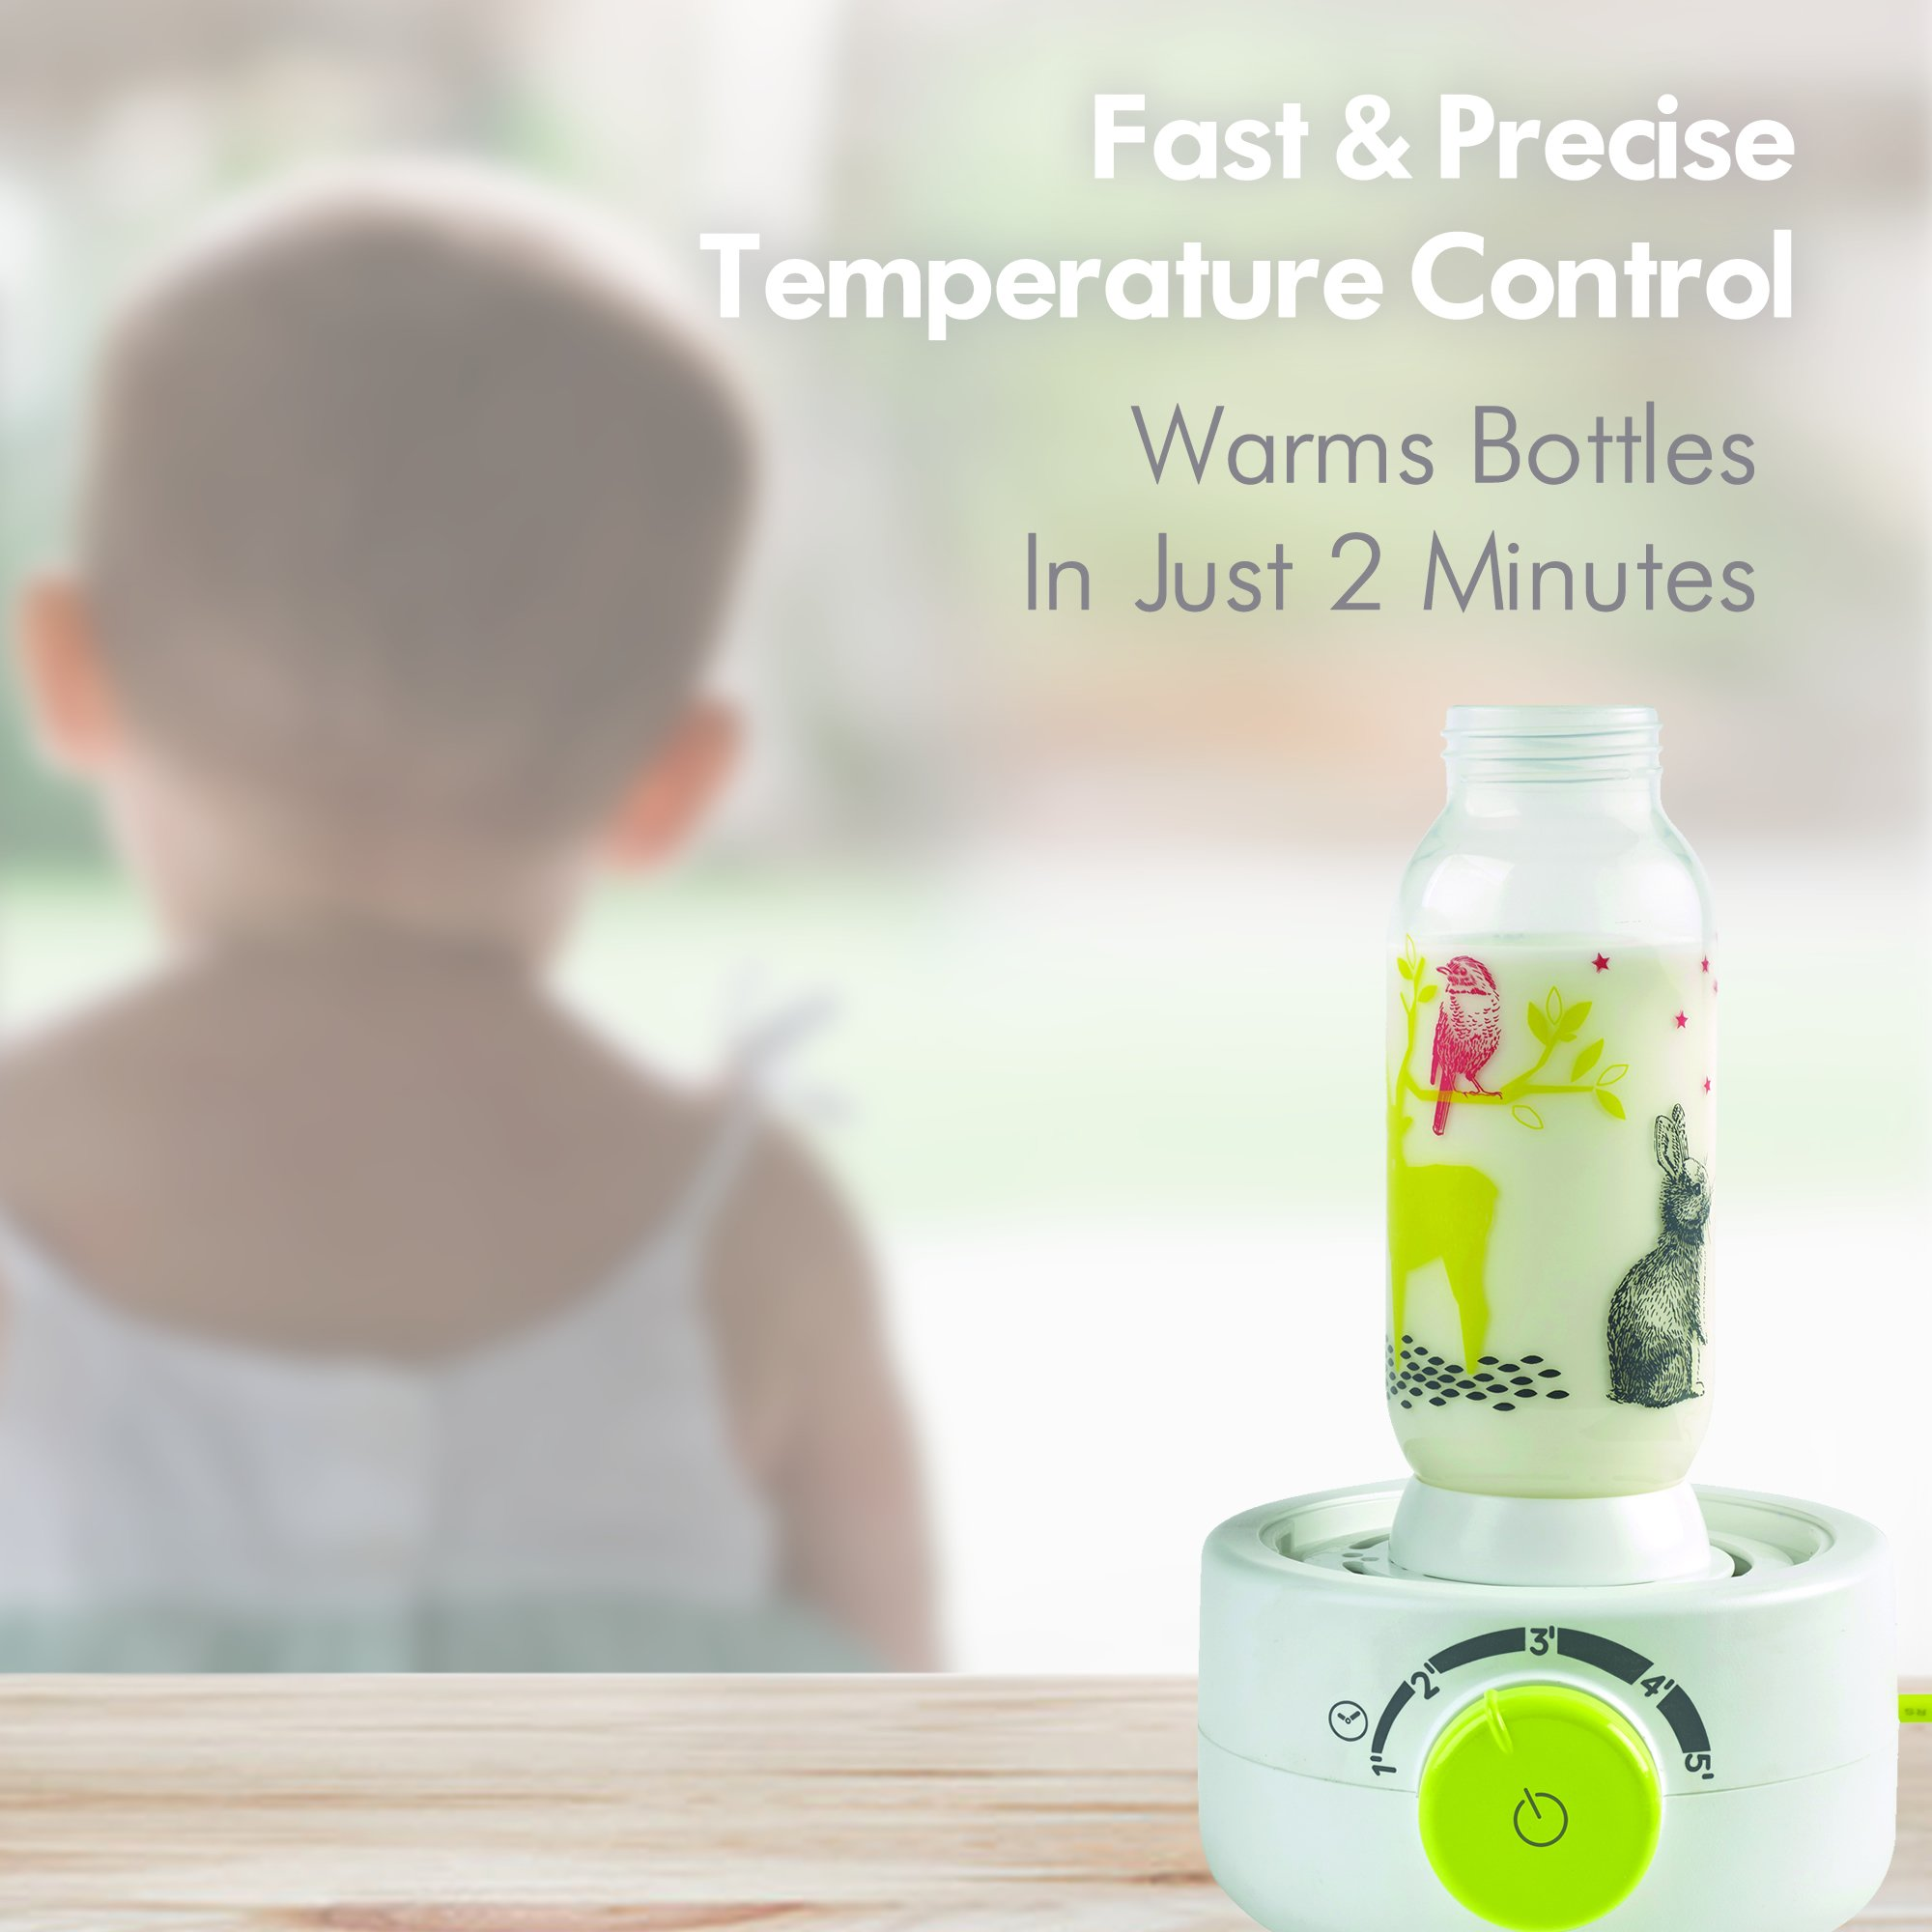 BEABA Quick Baby Bottle Warmer, Steam Sterilizer, Baby Food Heater (3-in-1) Warm Milk in Just Two Minutes, BPA and Lead Free, Simple Temperature Control, Fits All Bottle Sizes - Even Wide Neck, Clouds by BEABA (Image #2)